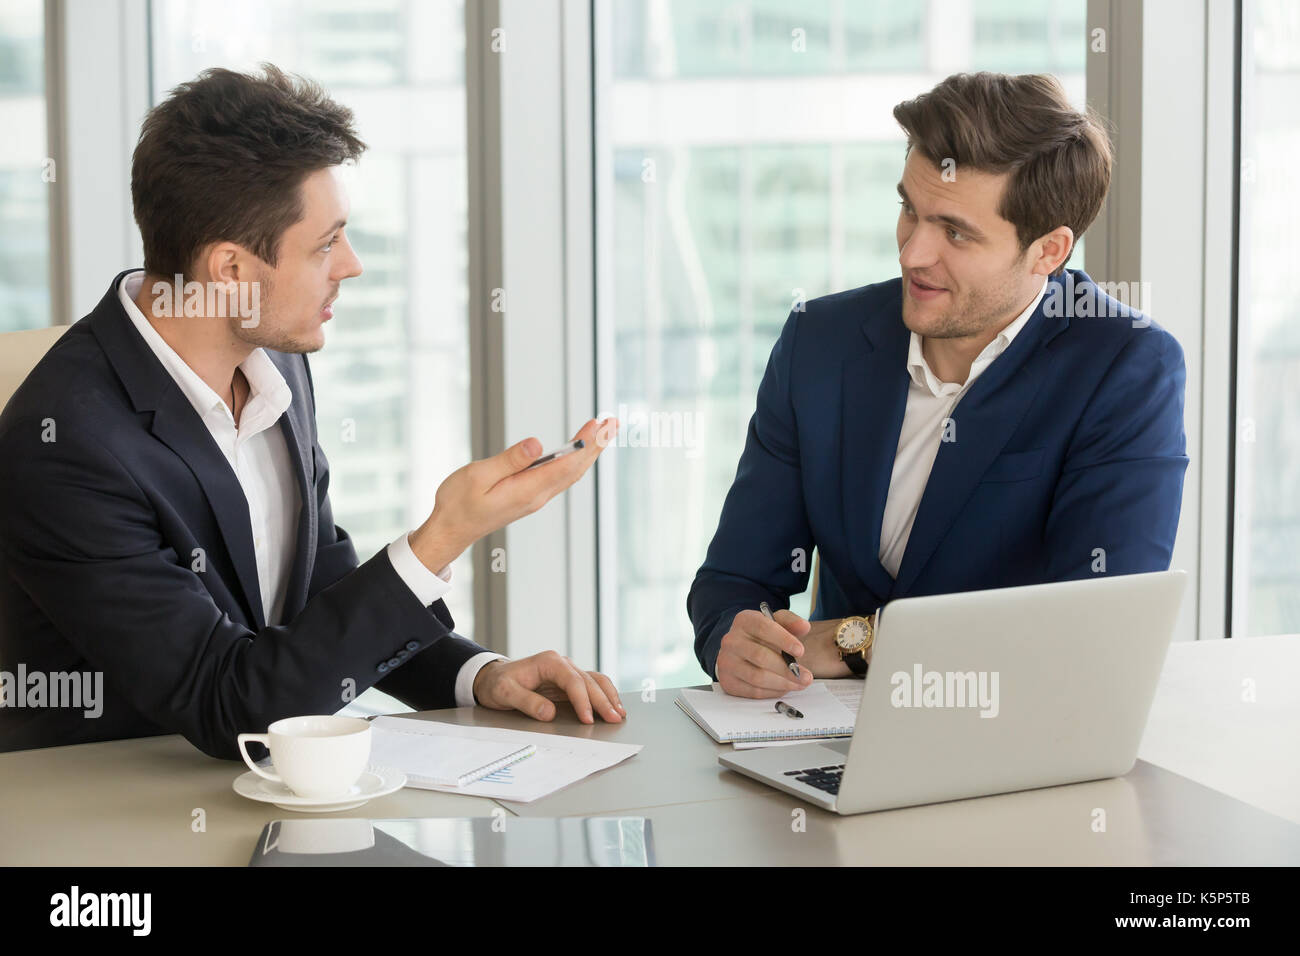 Young businessman convincing experienced colleague - Stock Image